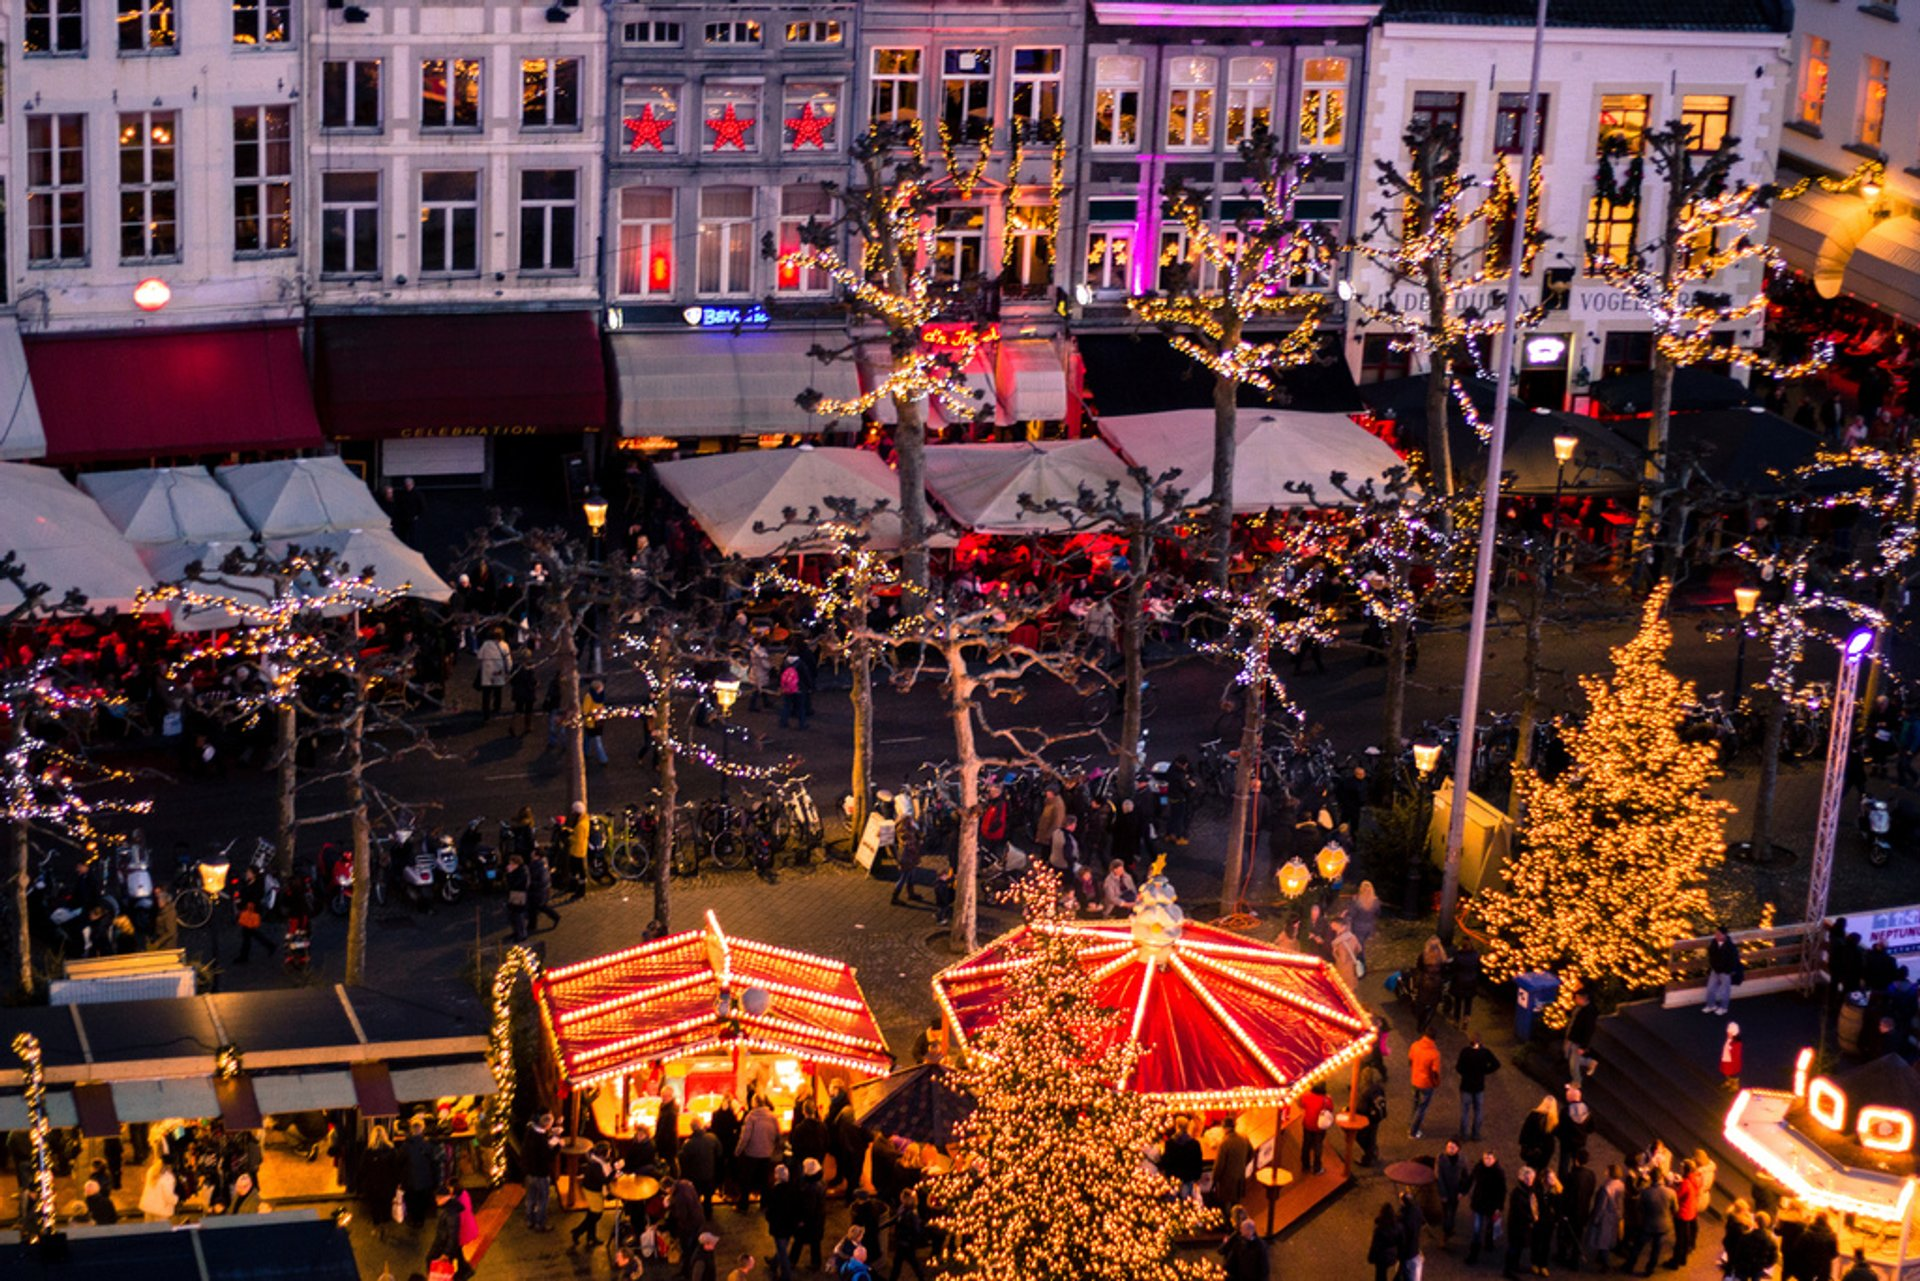 Maastricht Christmas Market in The Netherlands - Best Season 2019